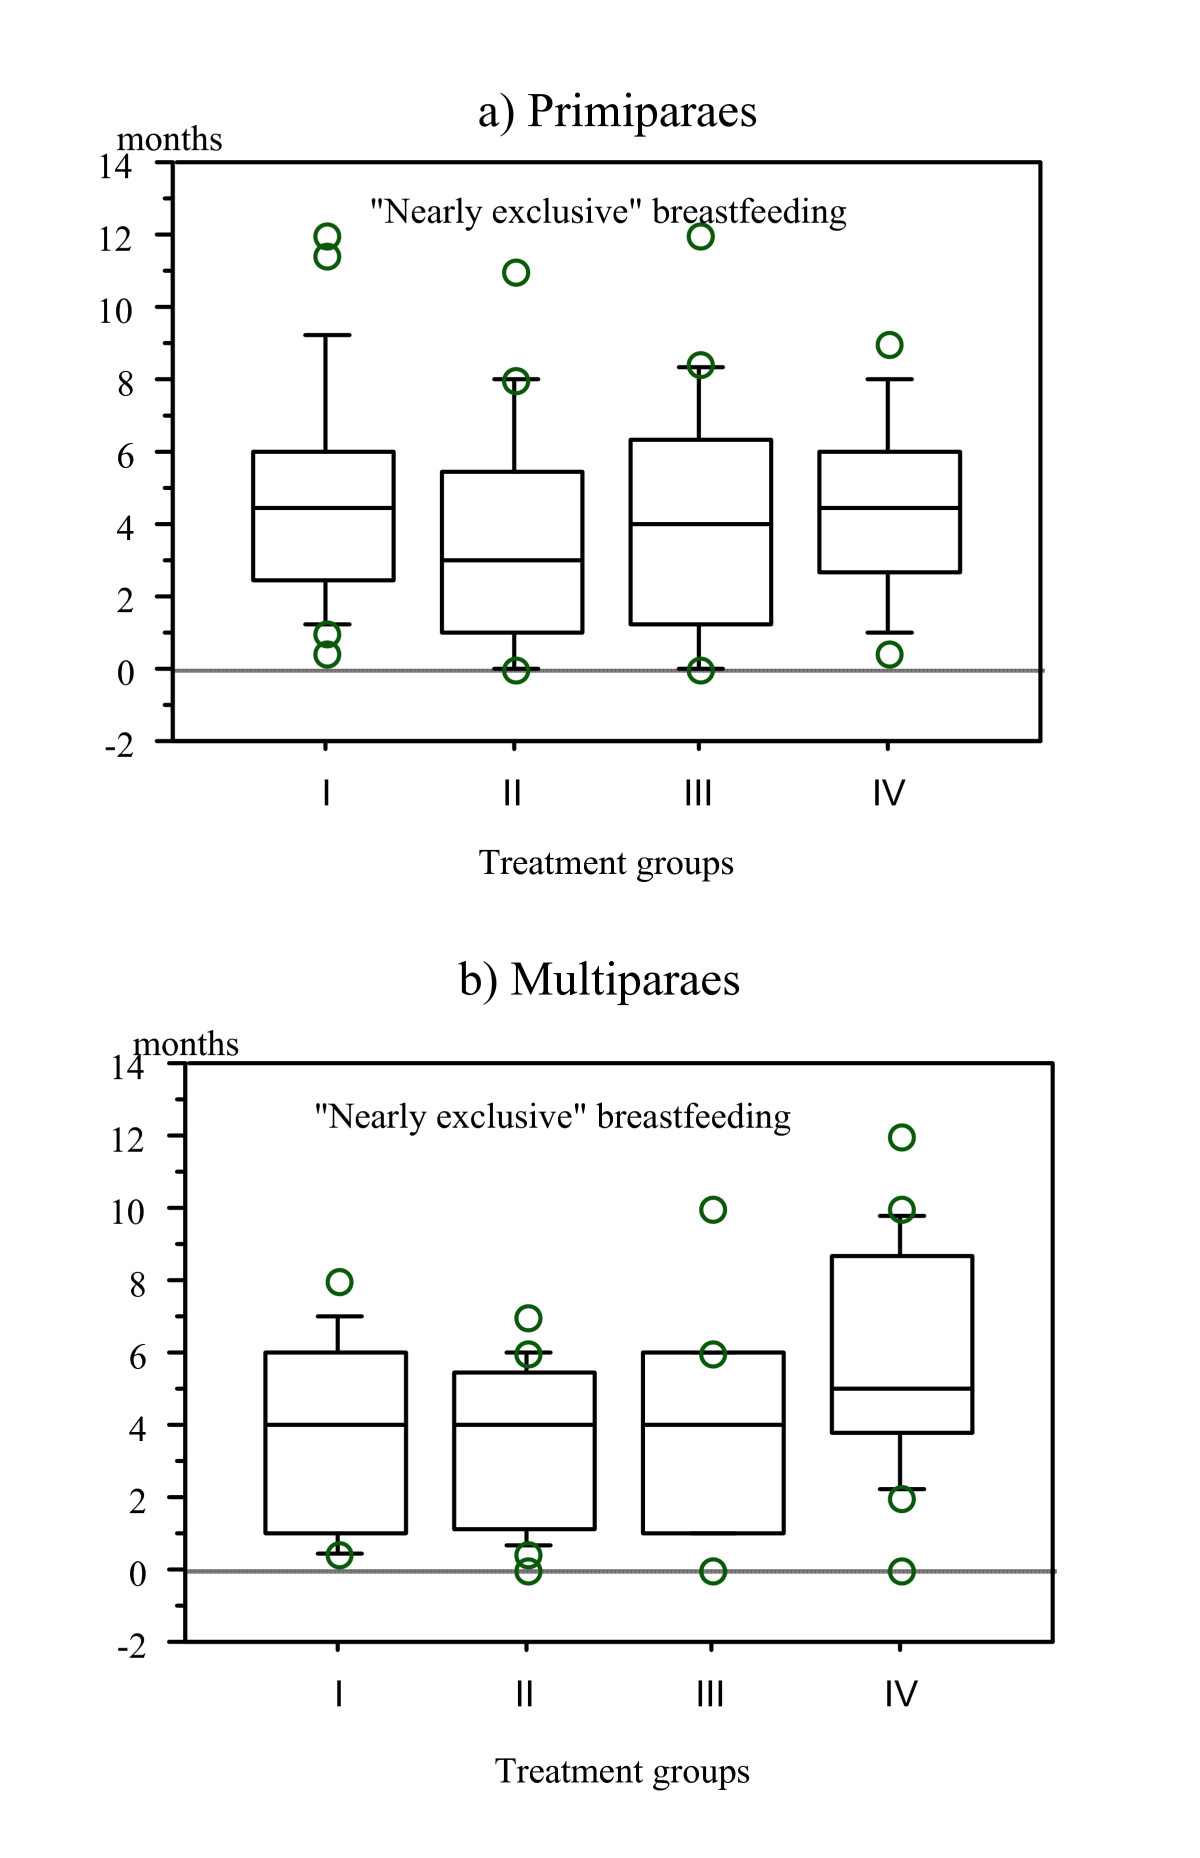 http://static-content.springer.com/image/art%3A10.1186%2F1746-4358-2-9/MediaObjects/13006_2005_Article_38_Fig9_HTML.jpg